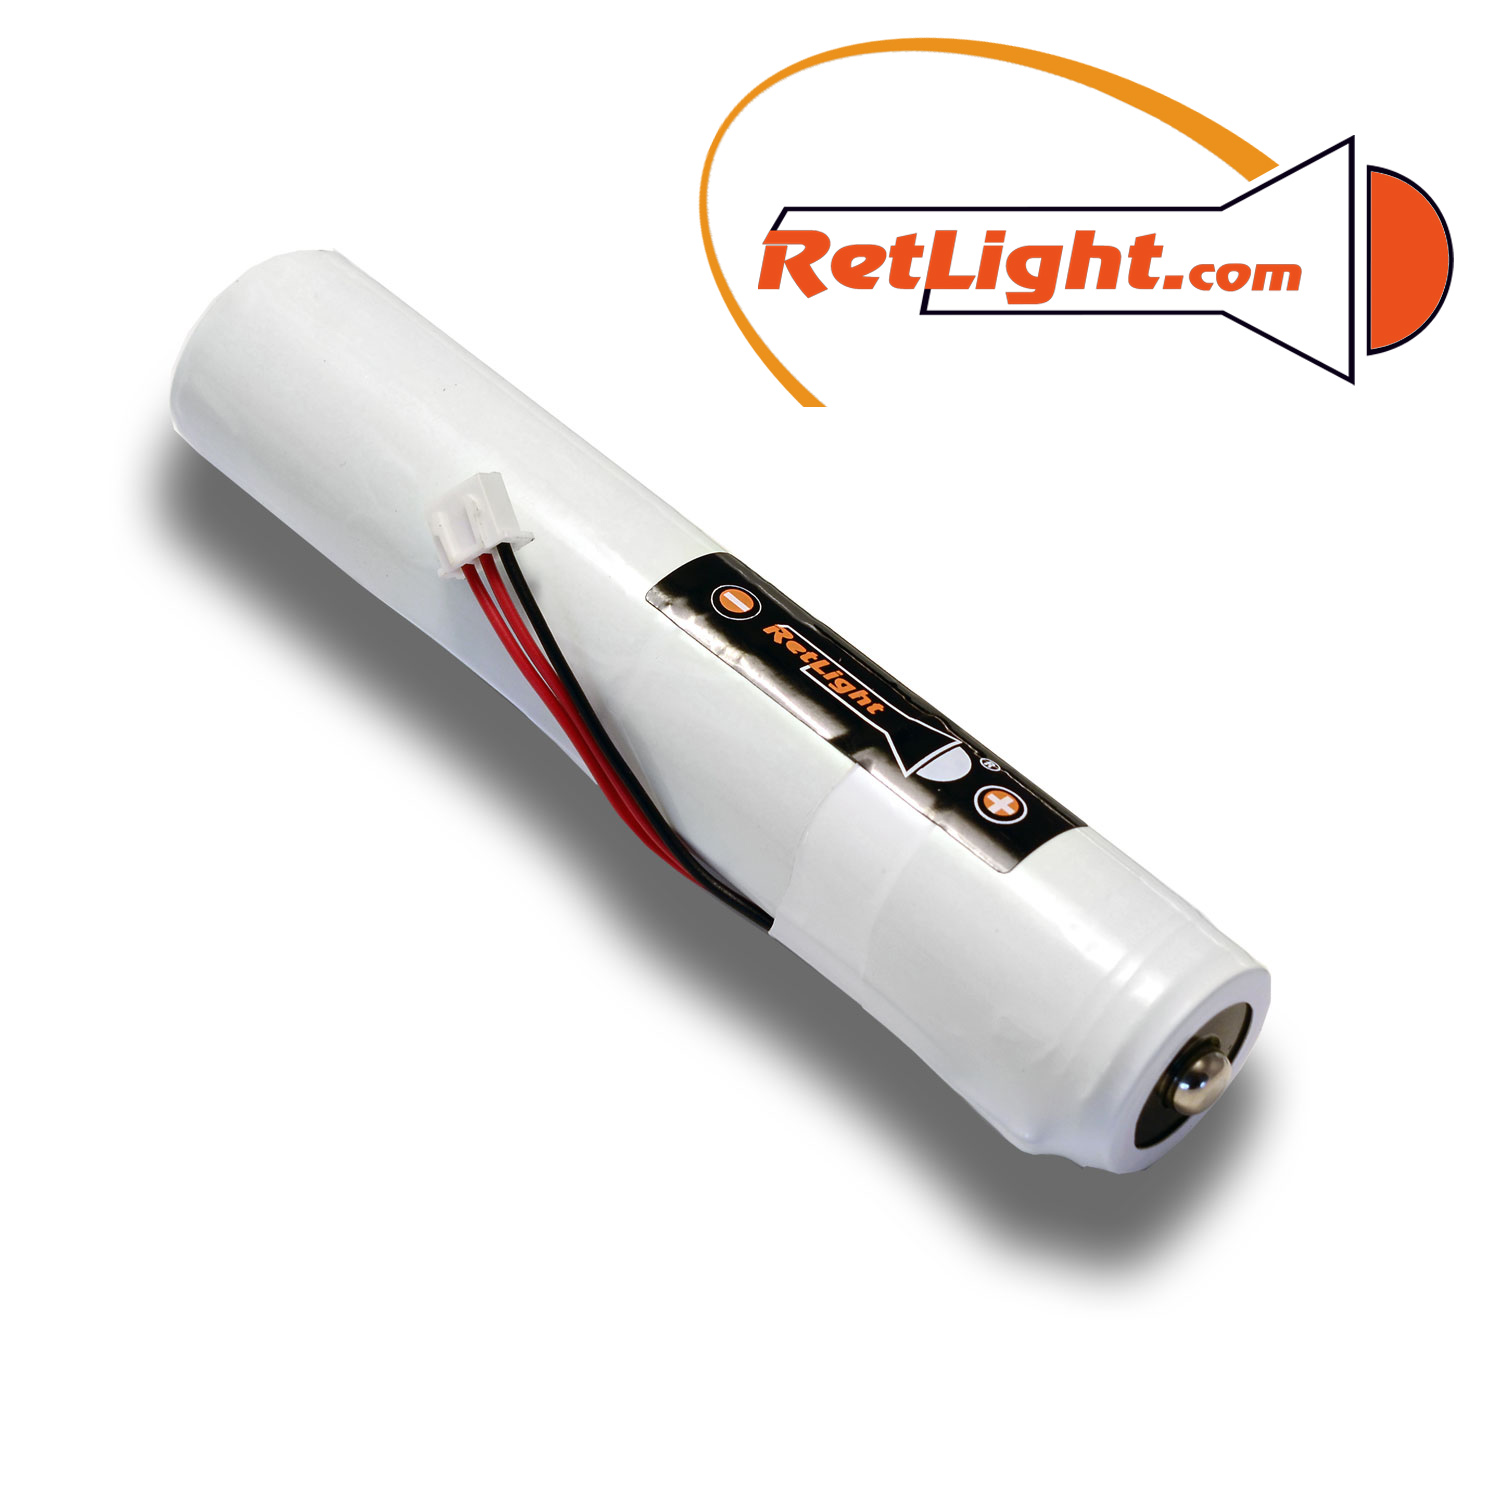 Battery pack for RetLight 3 (LiFePo4 A123-Systems x2) Catalog